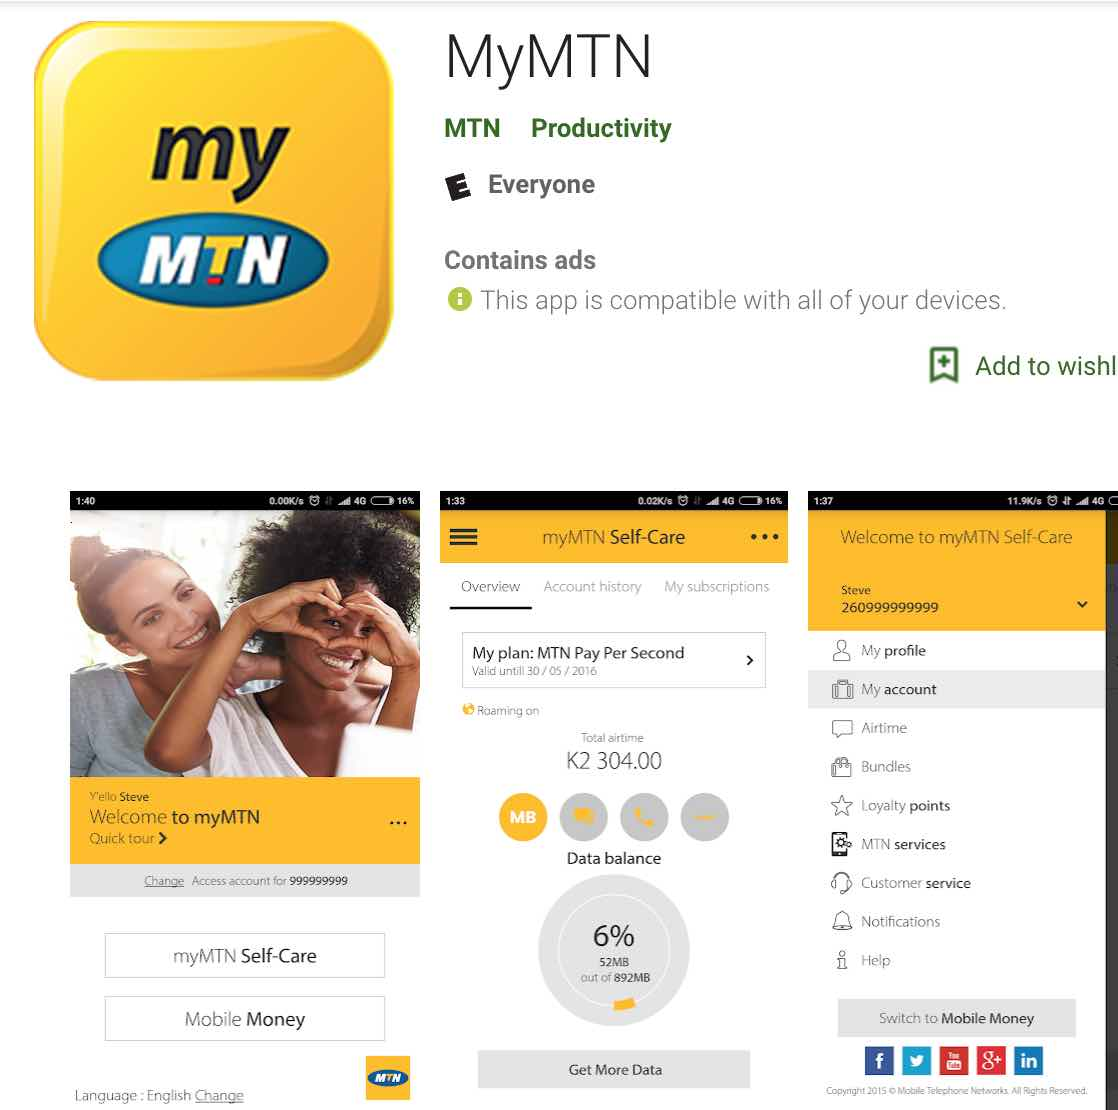 MyMTN App free data promo: Get 755MB absoltuley free and this is how